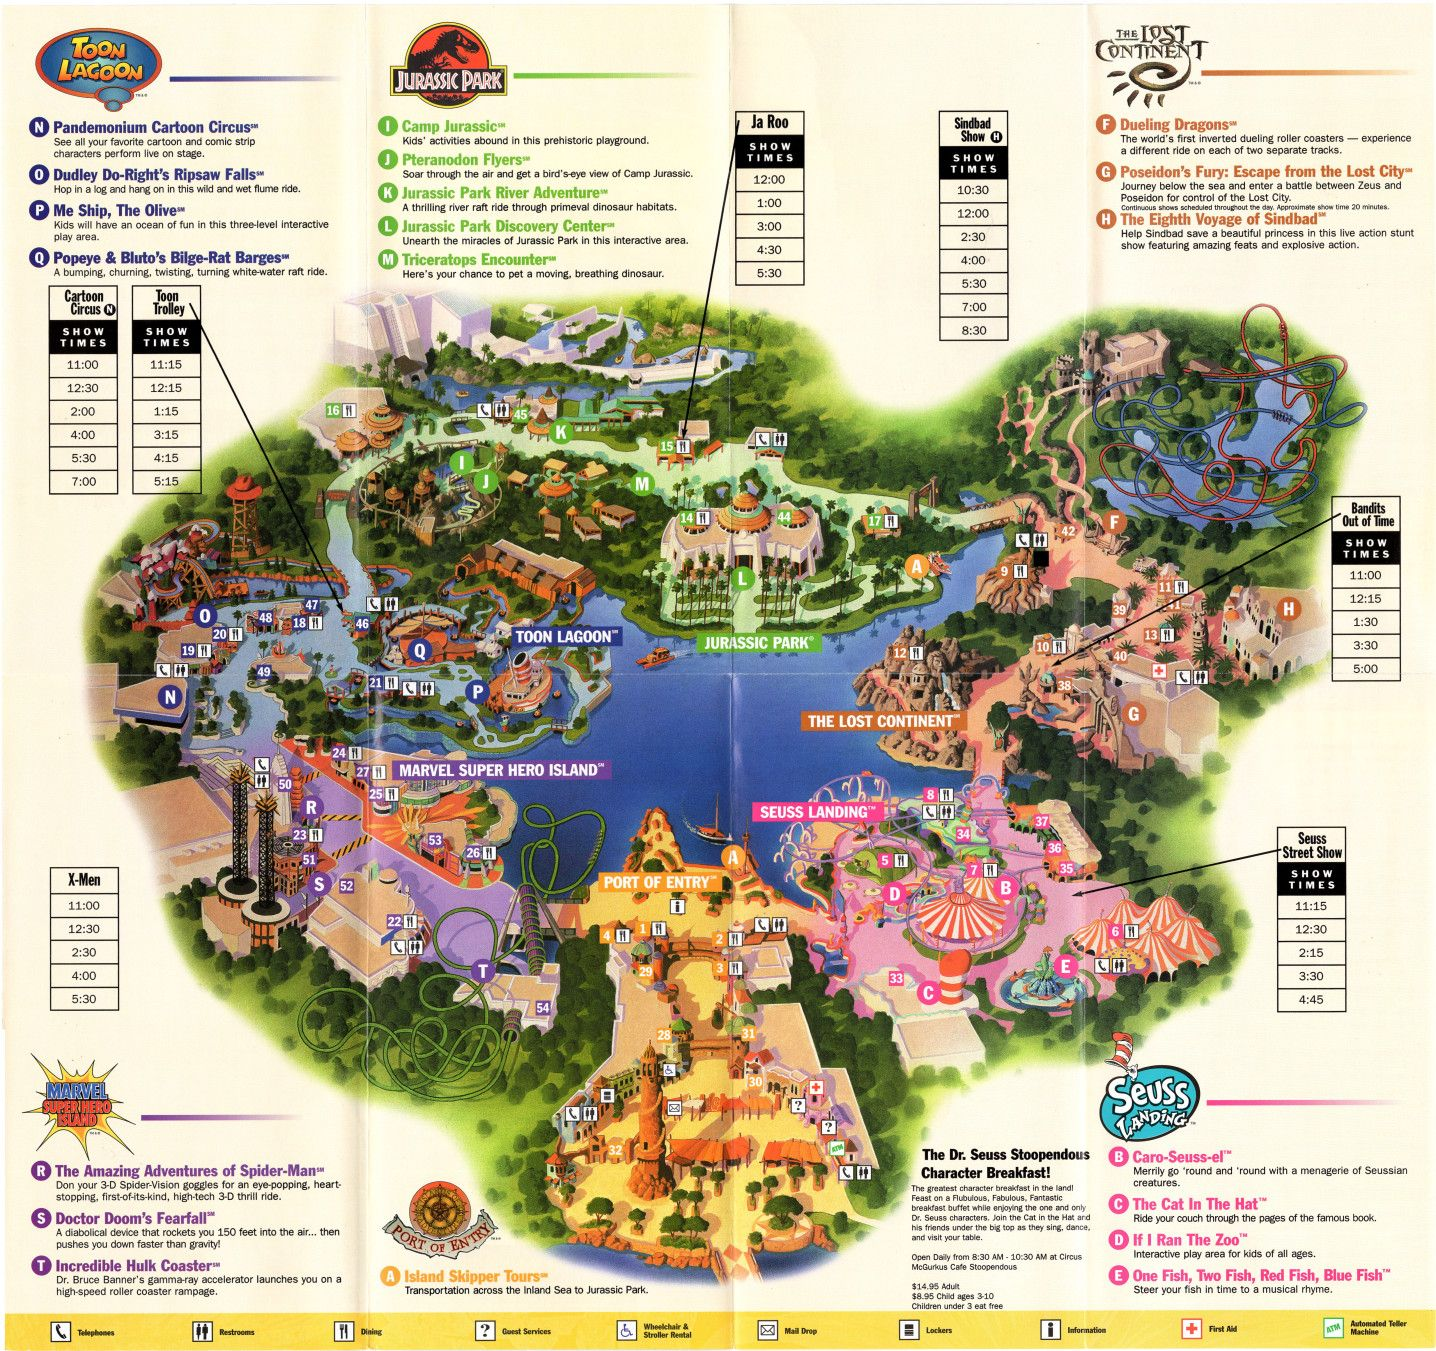 Pin By Mia On Universal In 2021 Islands Of Adventure Universal Studios Theme Park Universal Studios Orlando Map